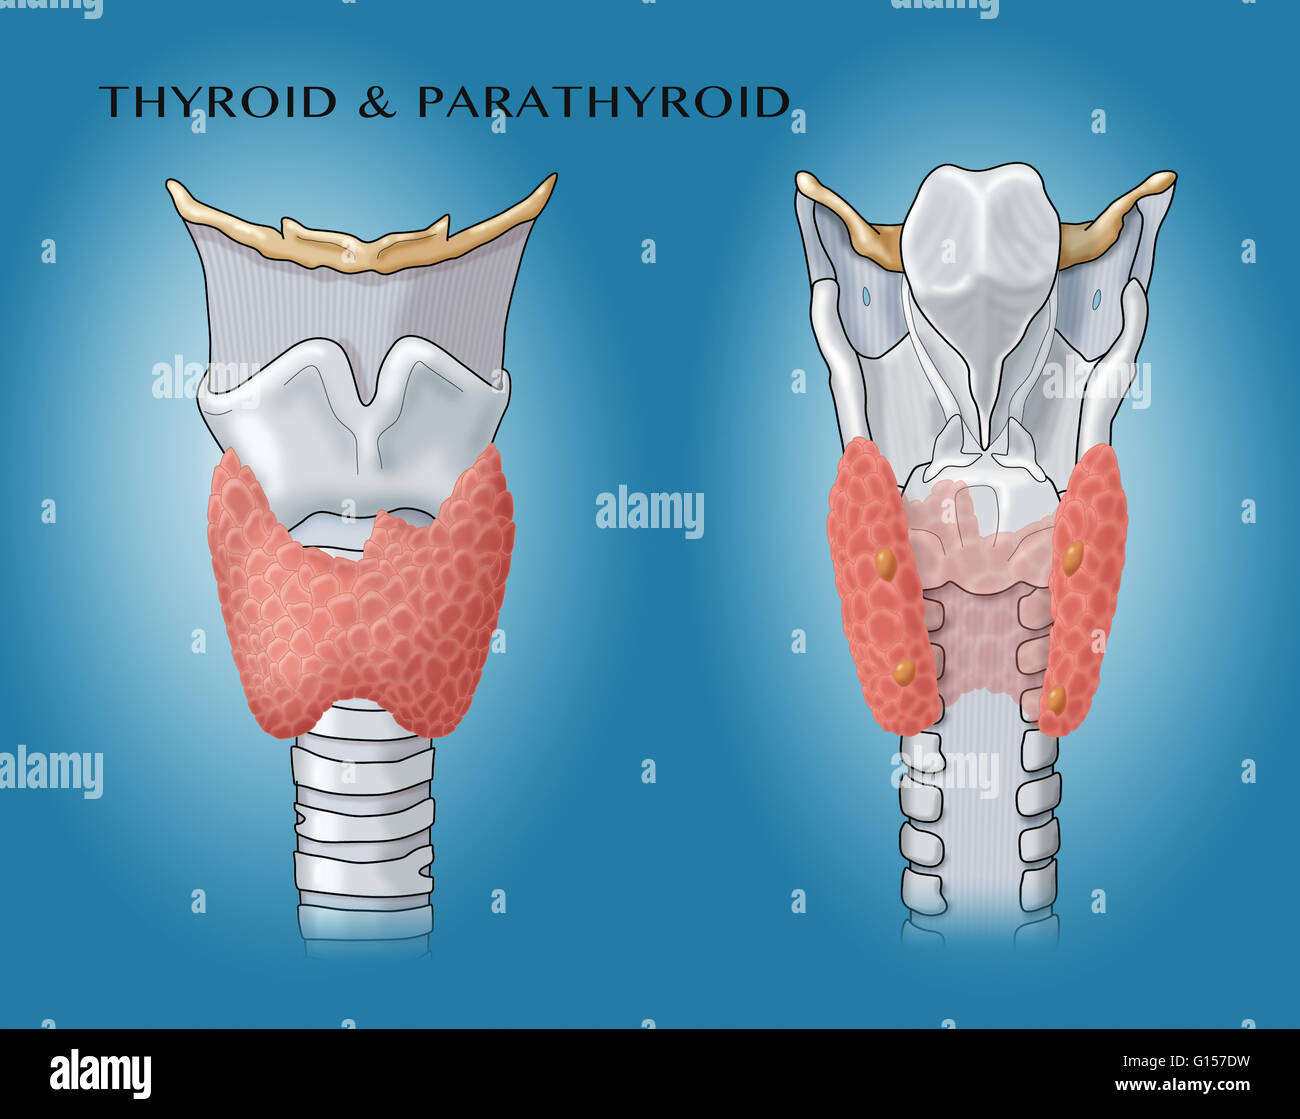 Anatomical Illustration Of The Thyroid And Parathyroid Glands Stock